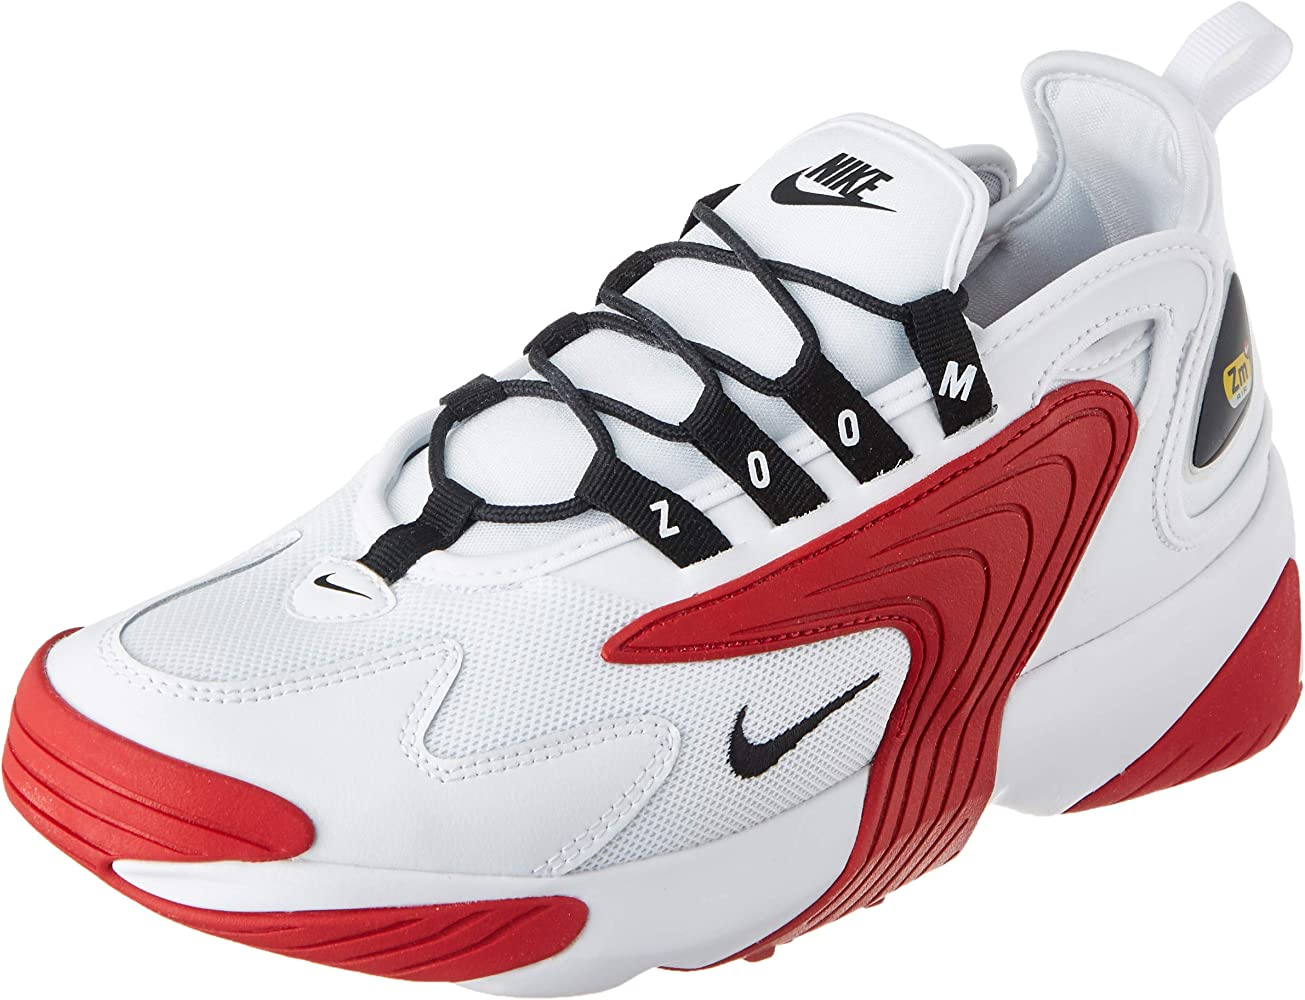 Nike AO0269, Zapatillas de Running para Hombre, Bianco White Black Gym Red White 107, 41 EU: Amazon.es: Zapatos y complementos